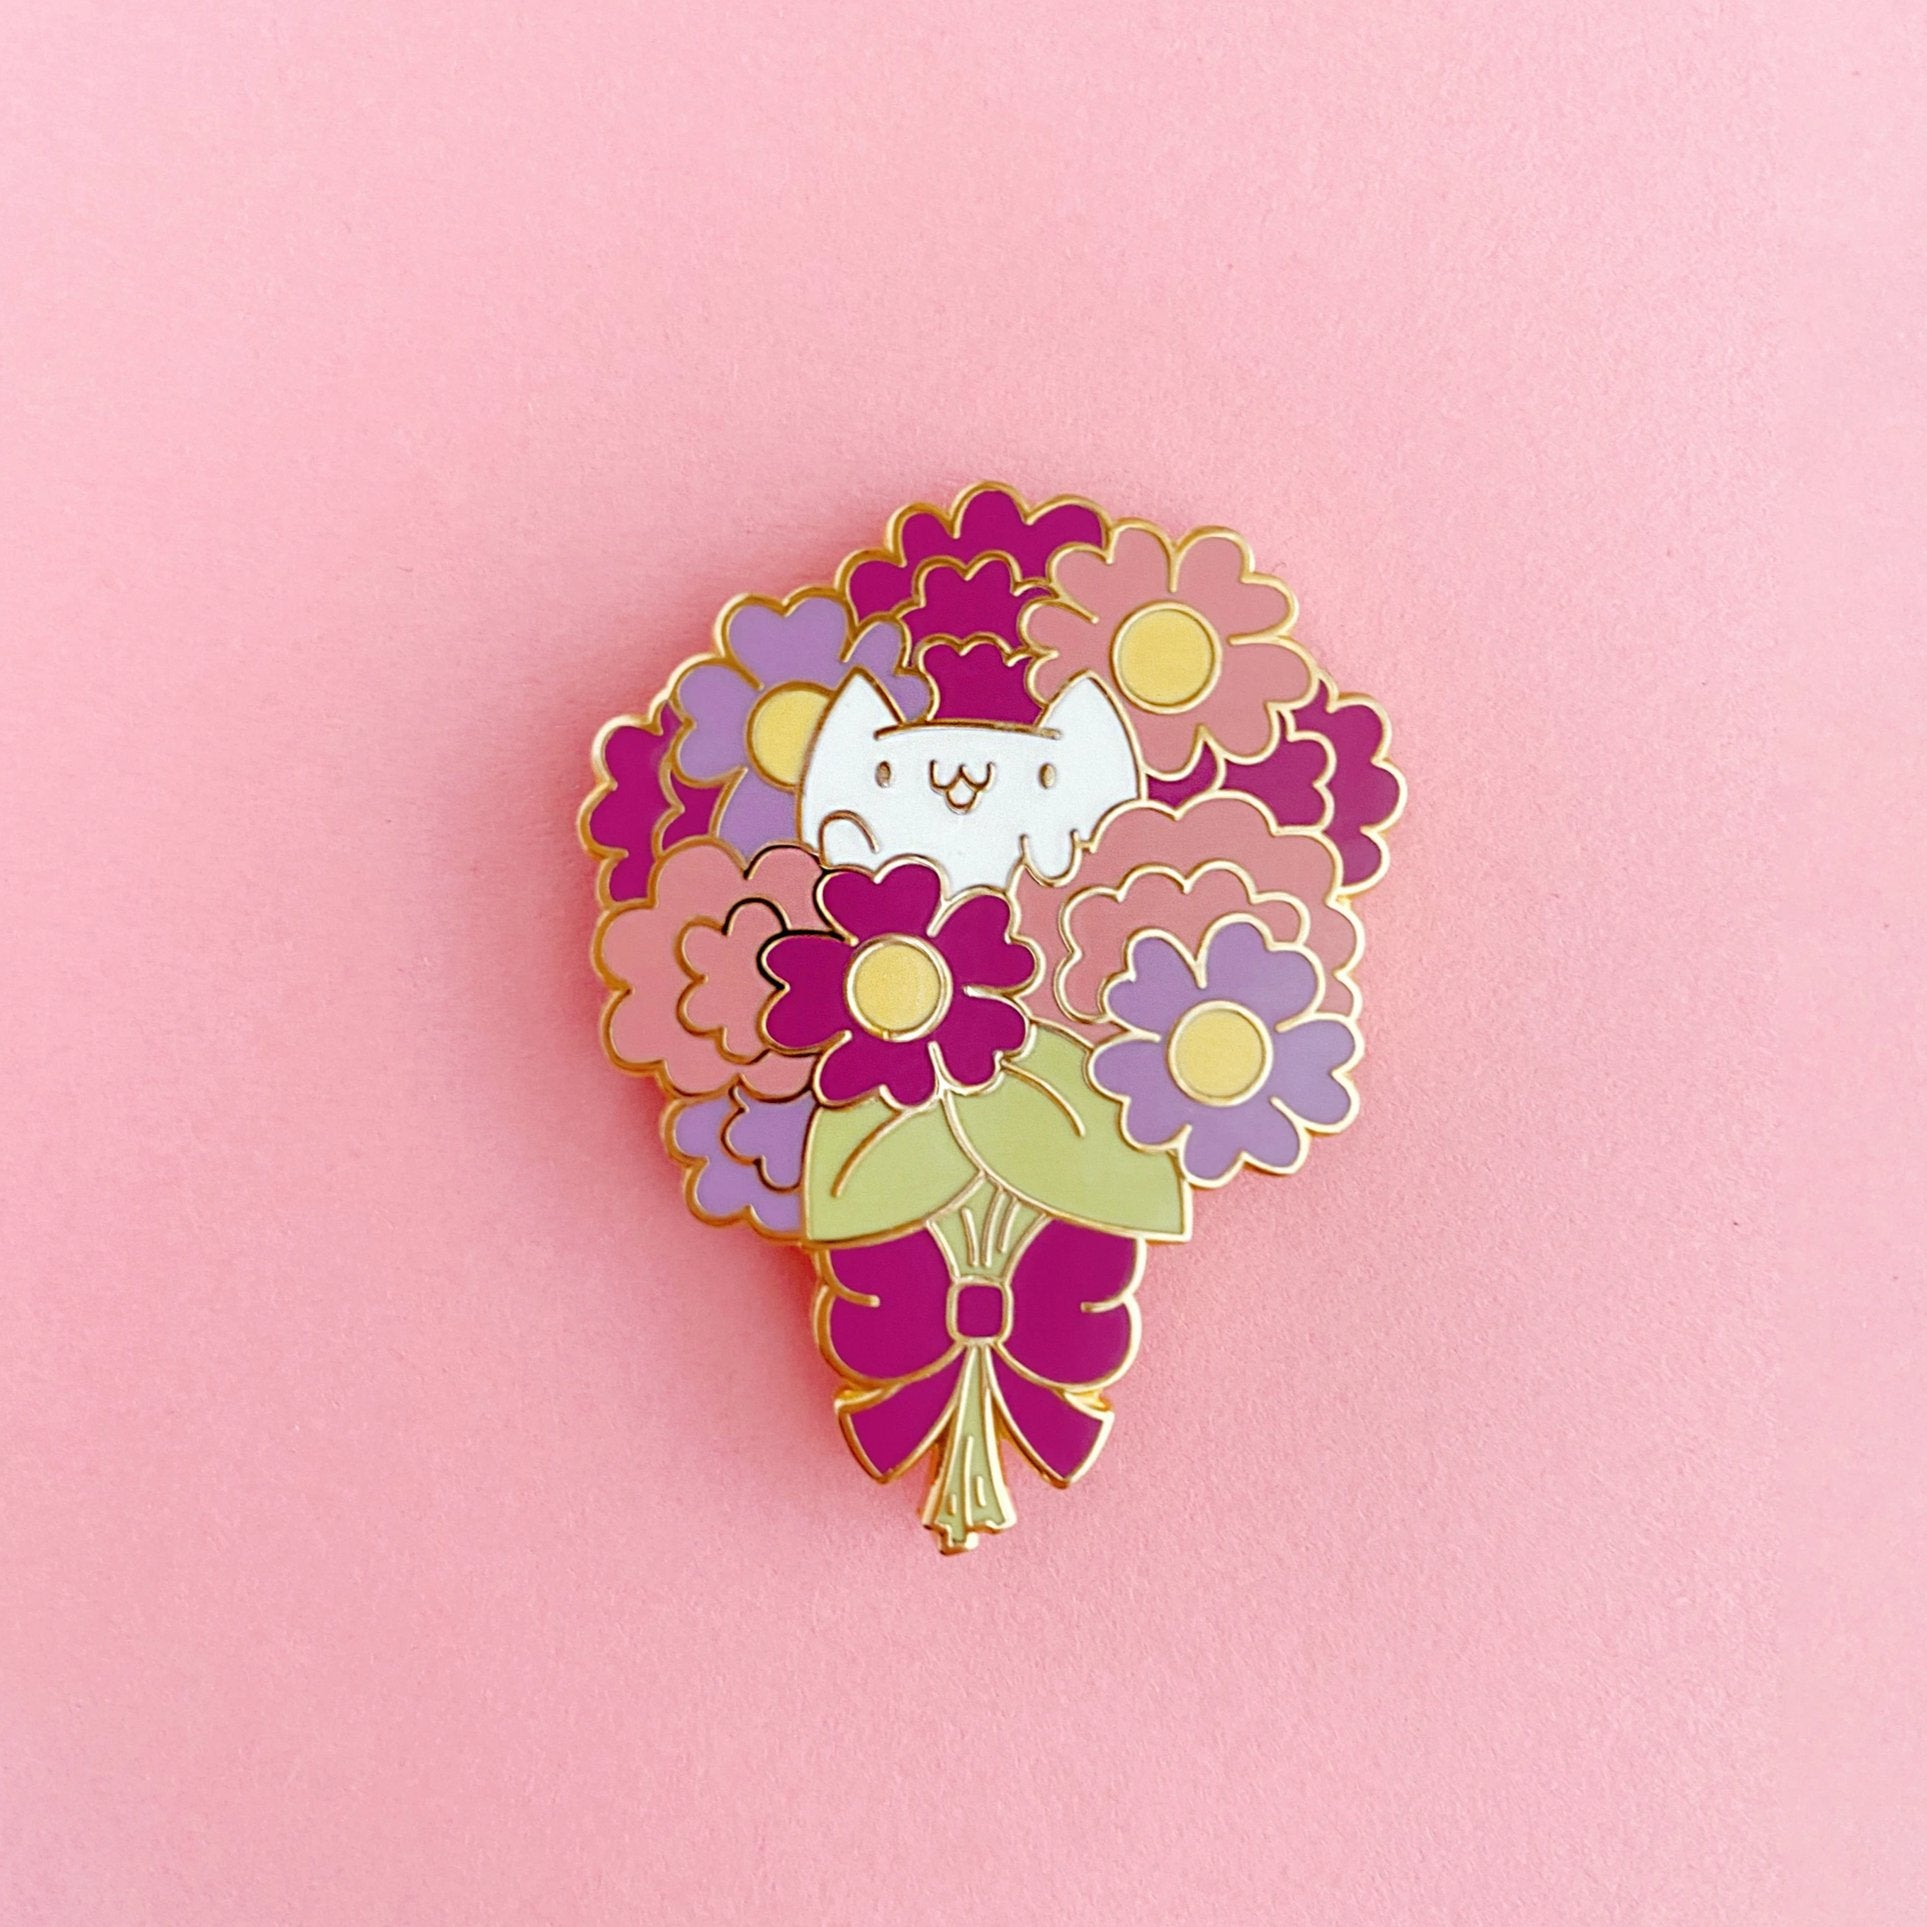 Flower Kittens Bouquet Enamel Pin - Enamel Pin - The Pink Samurai